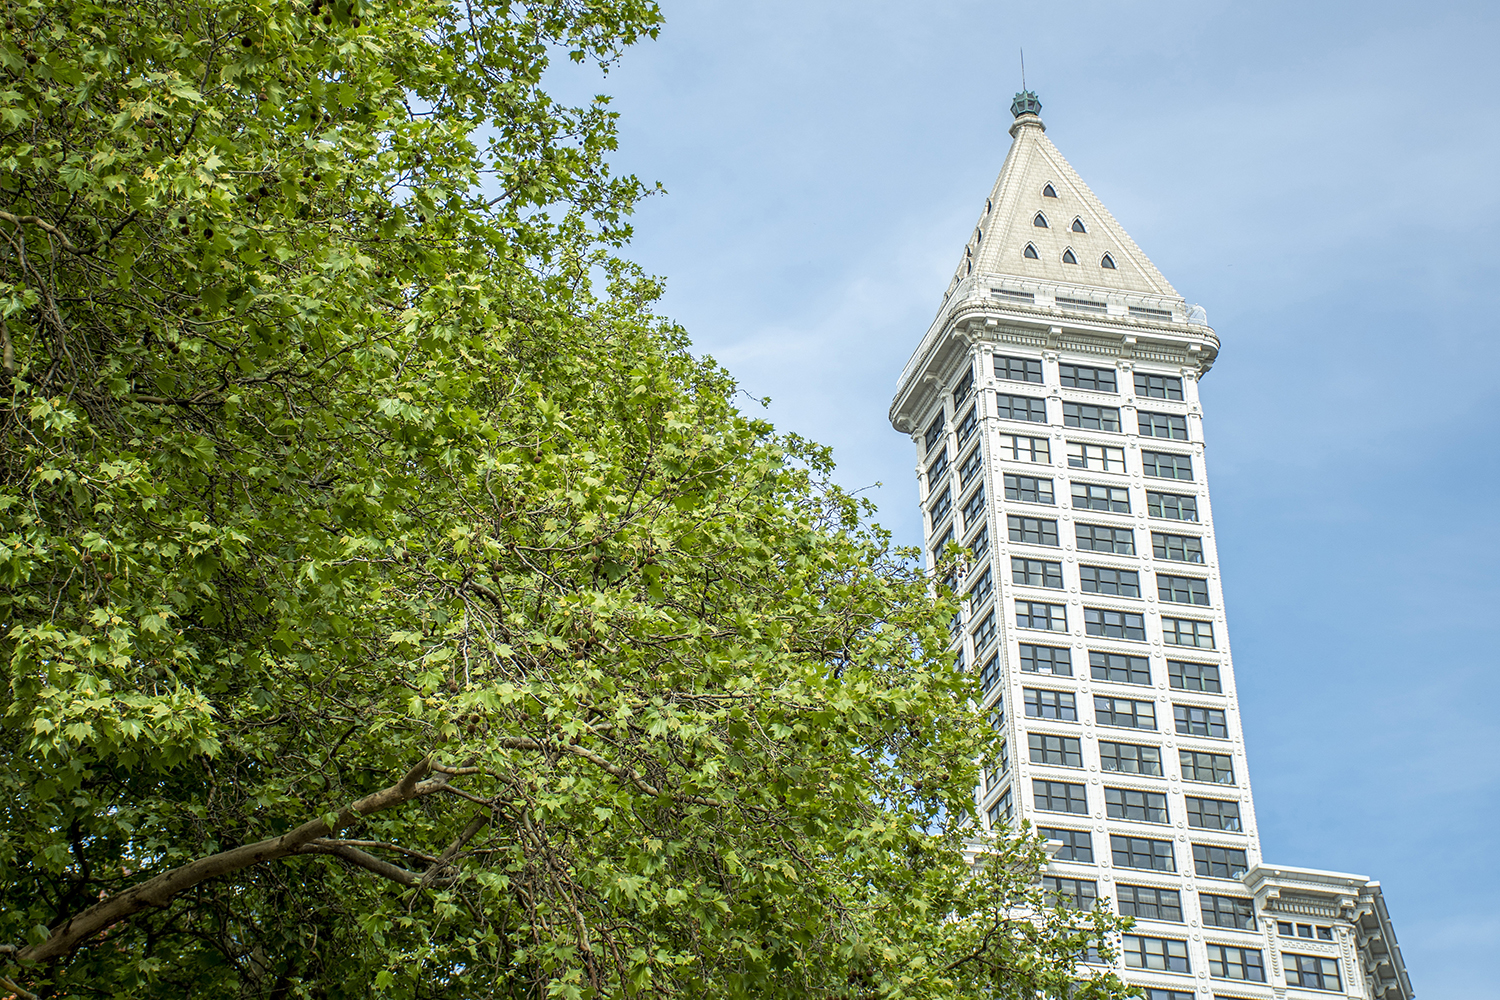 Built in 1914, the Smith Tower is one of the most instantly recognizable icons in Seattle. The 484 feet tall, 38-story Neoclassical landmark was the very first skyscraper in the city, and was also one of the tallest buildings in the U.S. outside of New York City at the time. Plus, there's a private apartment in the pyramid at the very top. (Image: Rachael Jones / Seattle Refined)